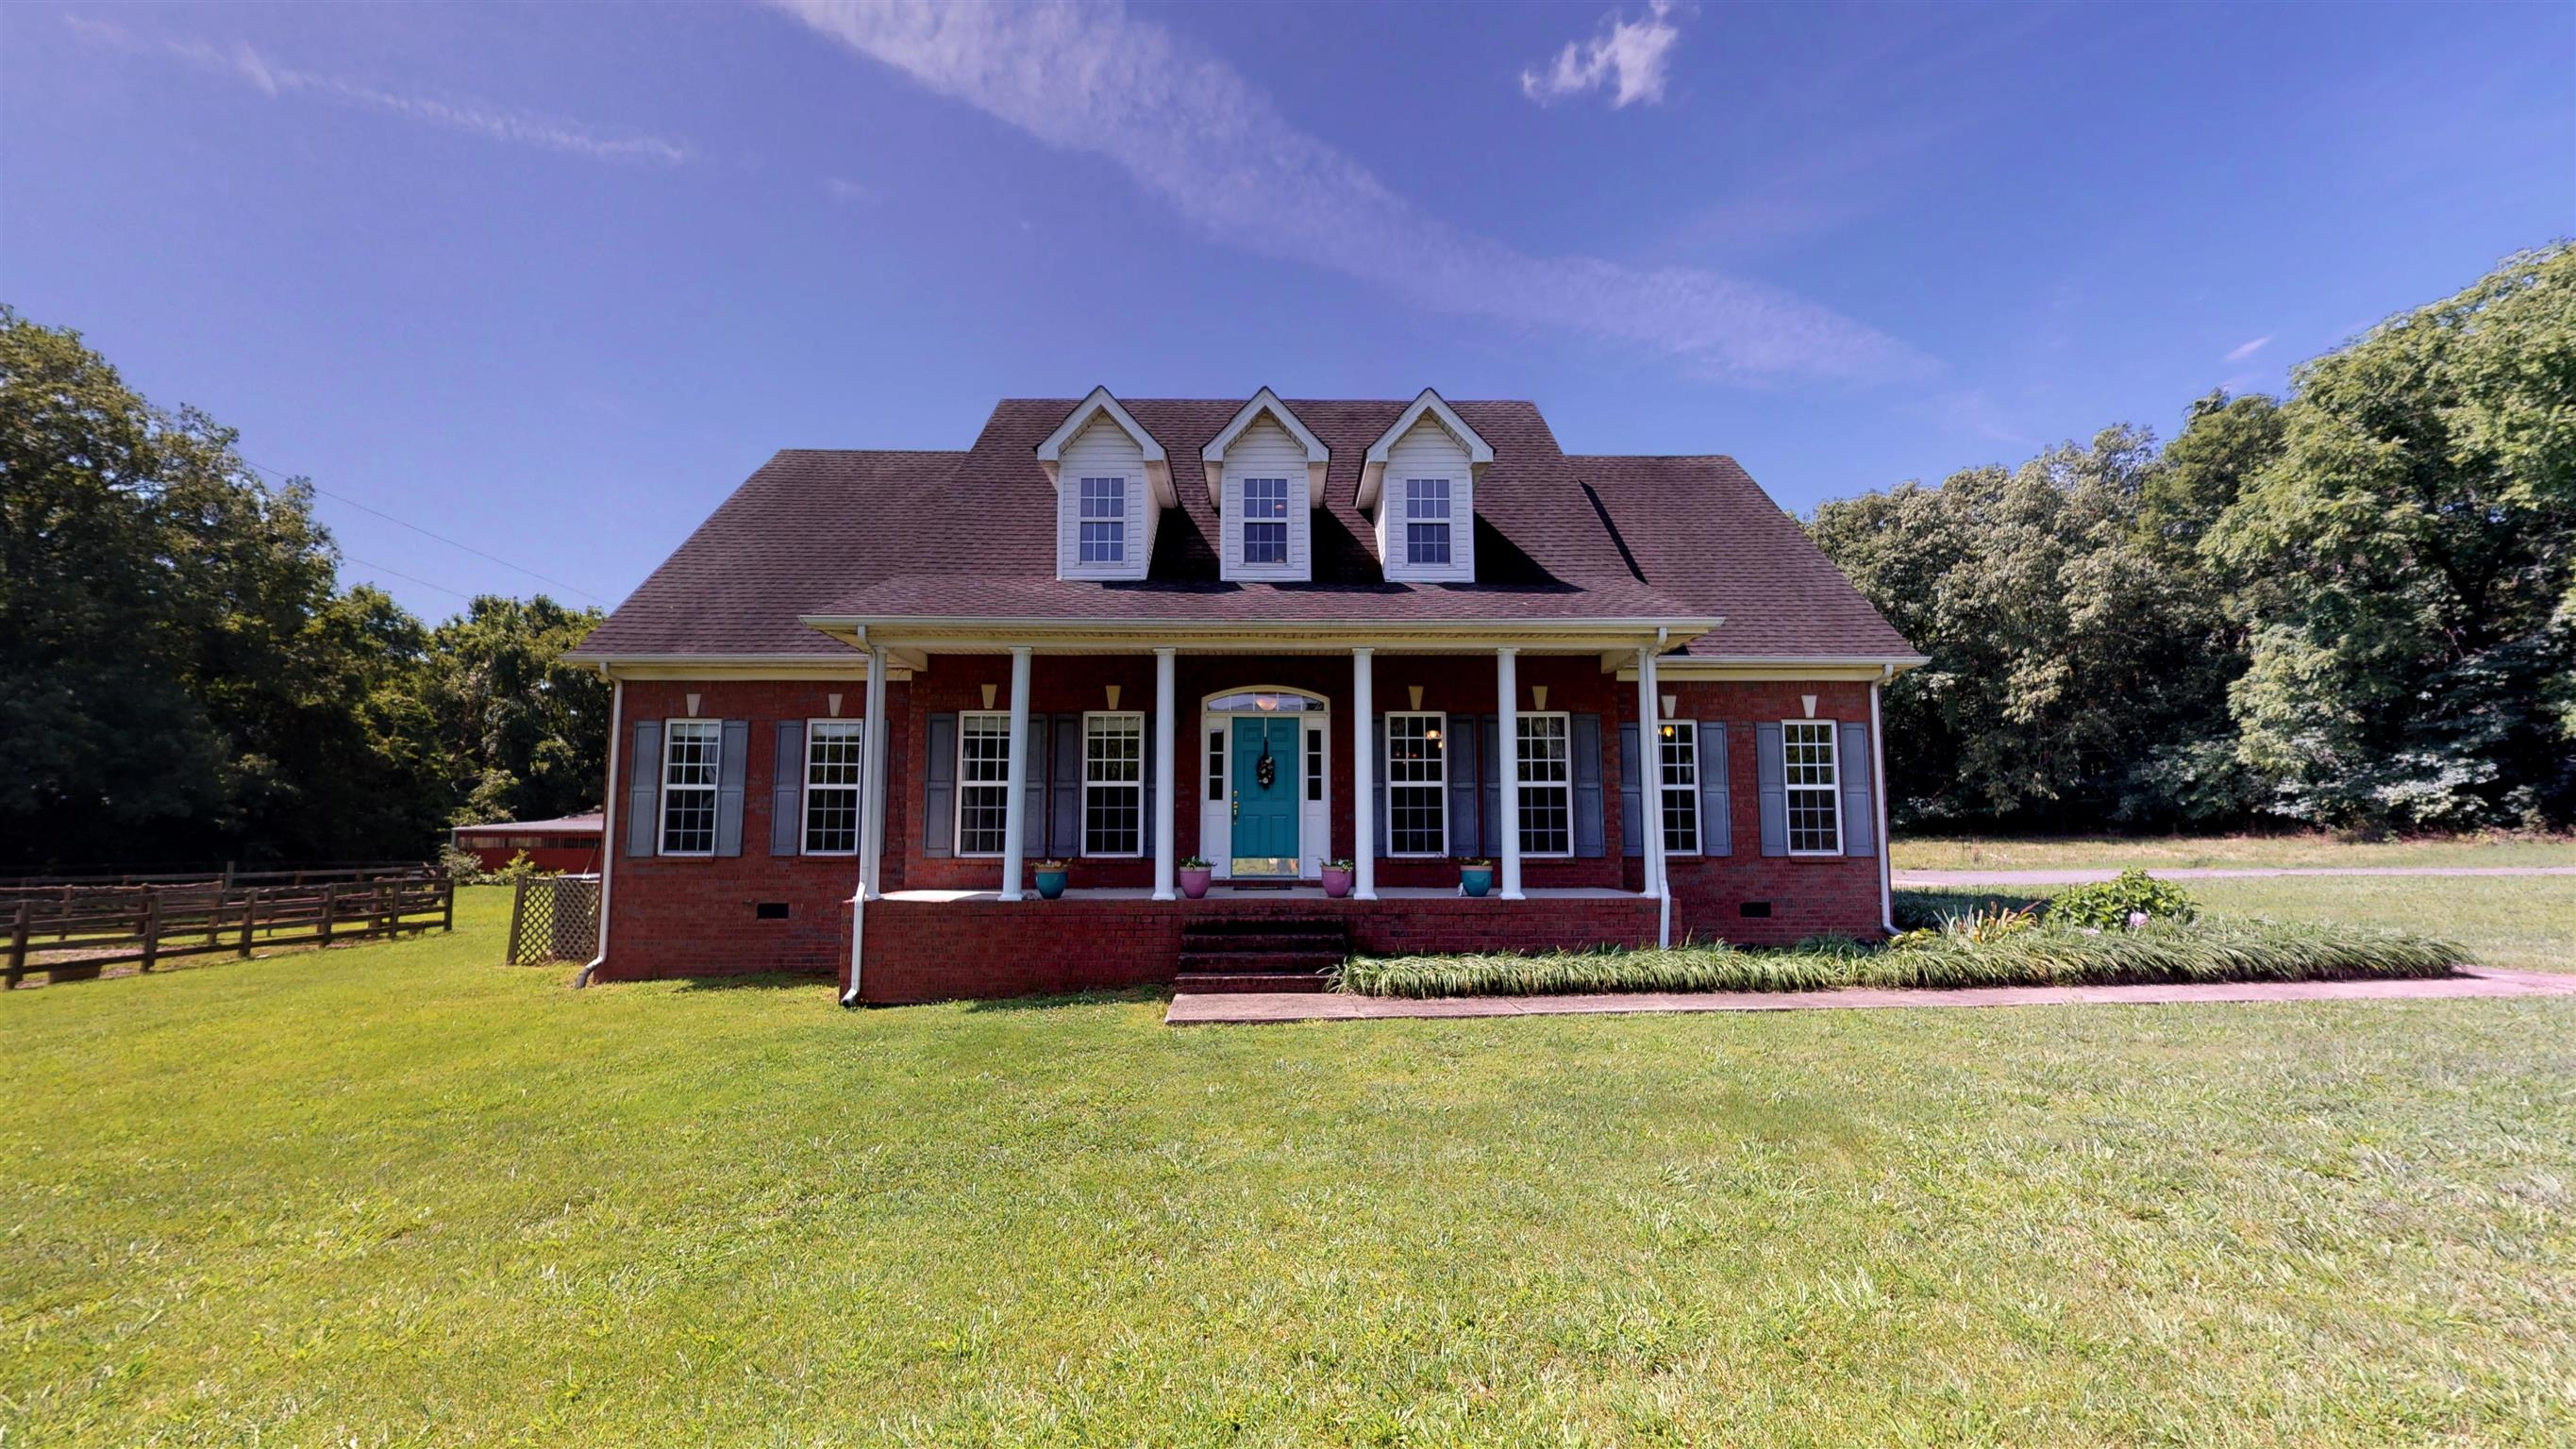 3125 Thompson Rd, Murfreesboro, TN 37128 - Murfreesboro, TN real estate listing